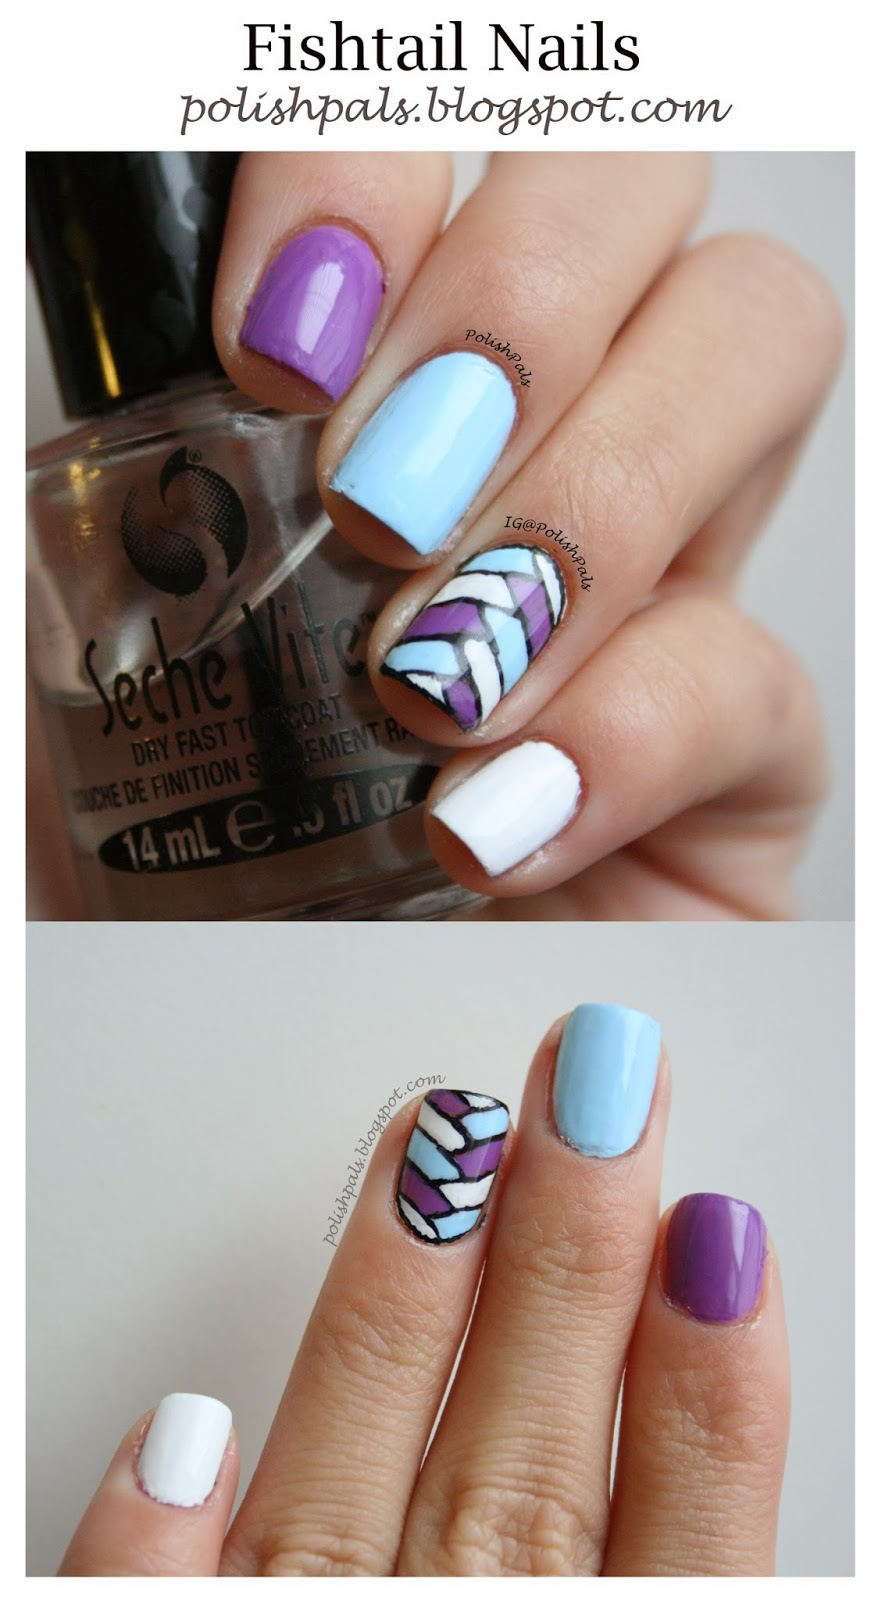 Polish Pals: Fishtail Nails, Anyone?